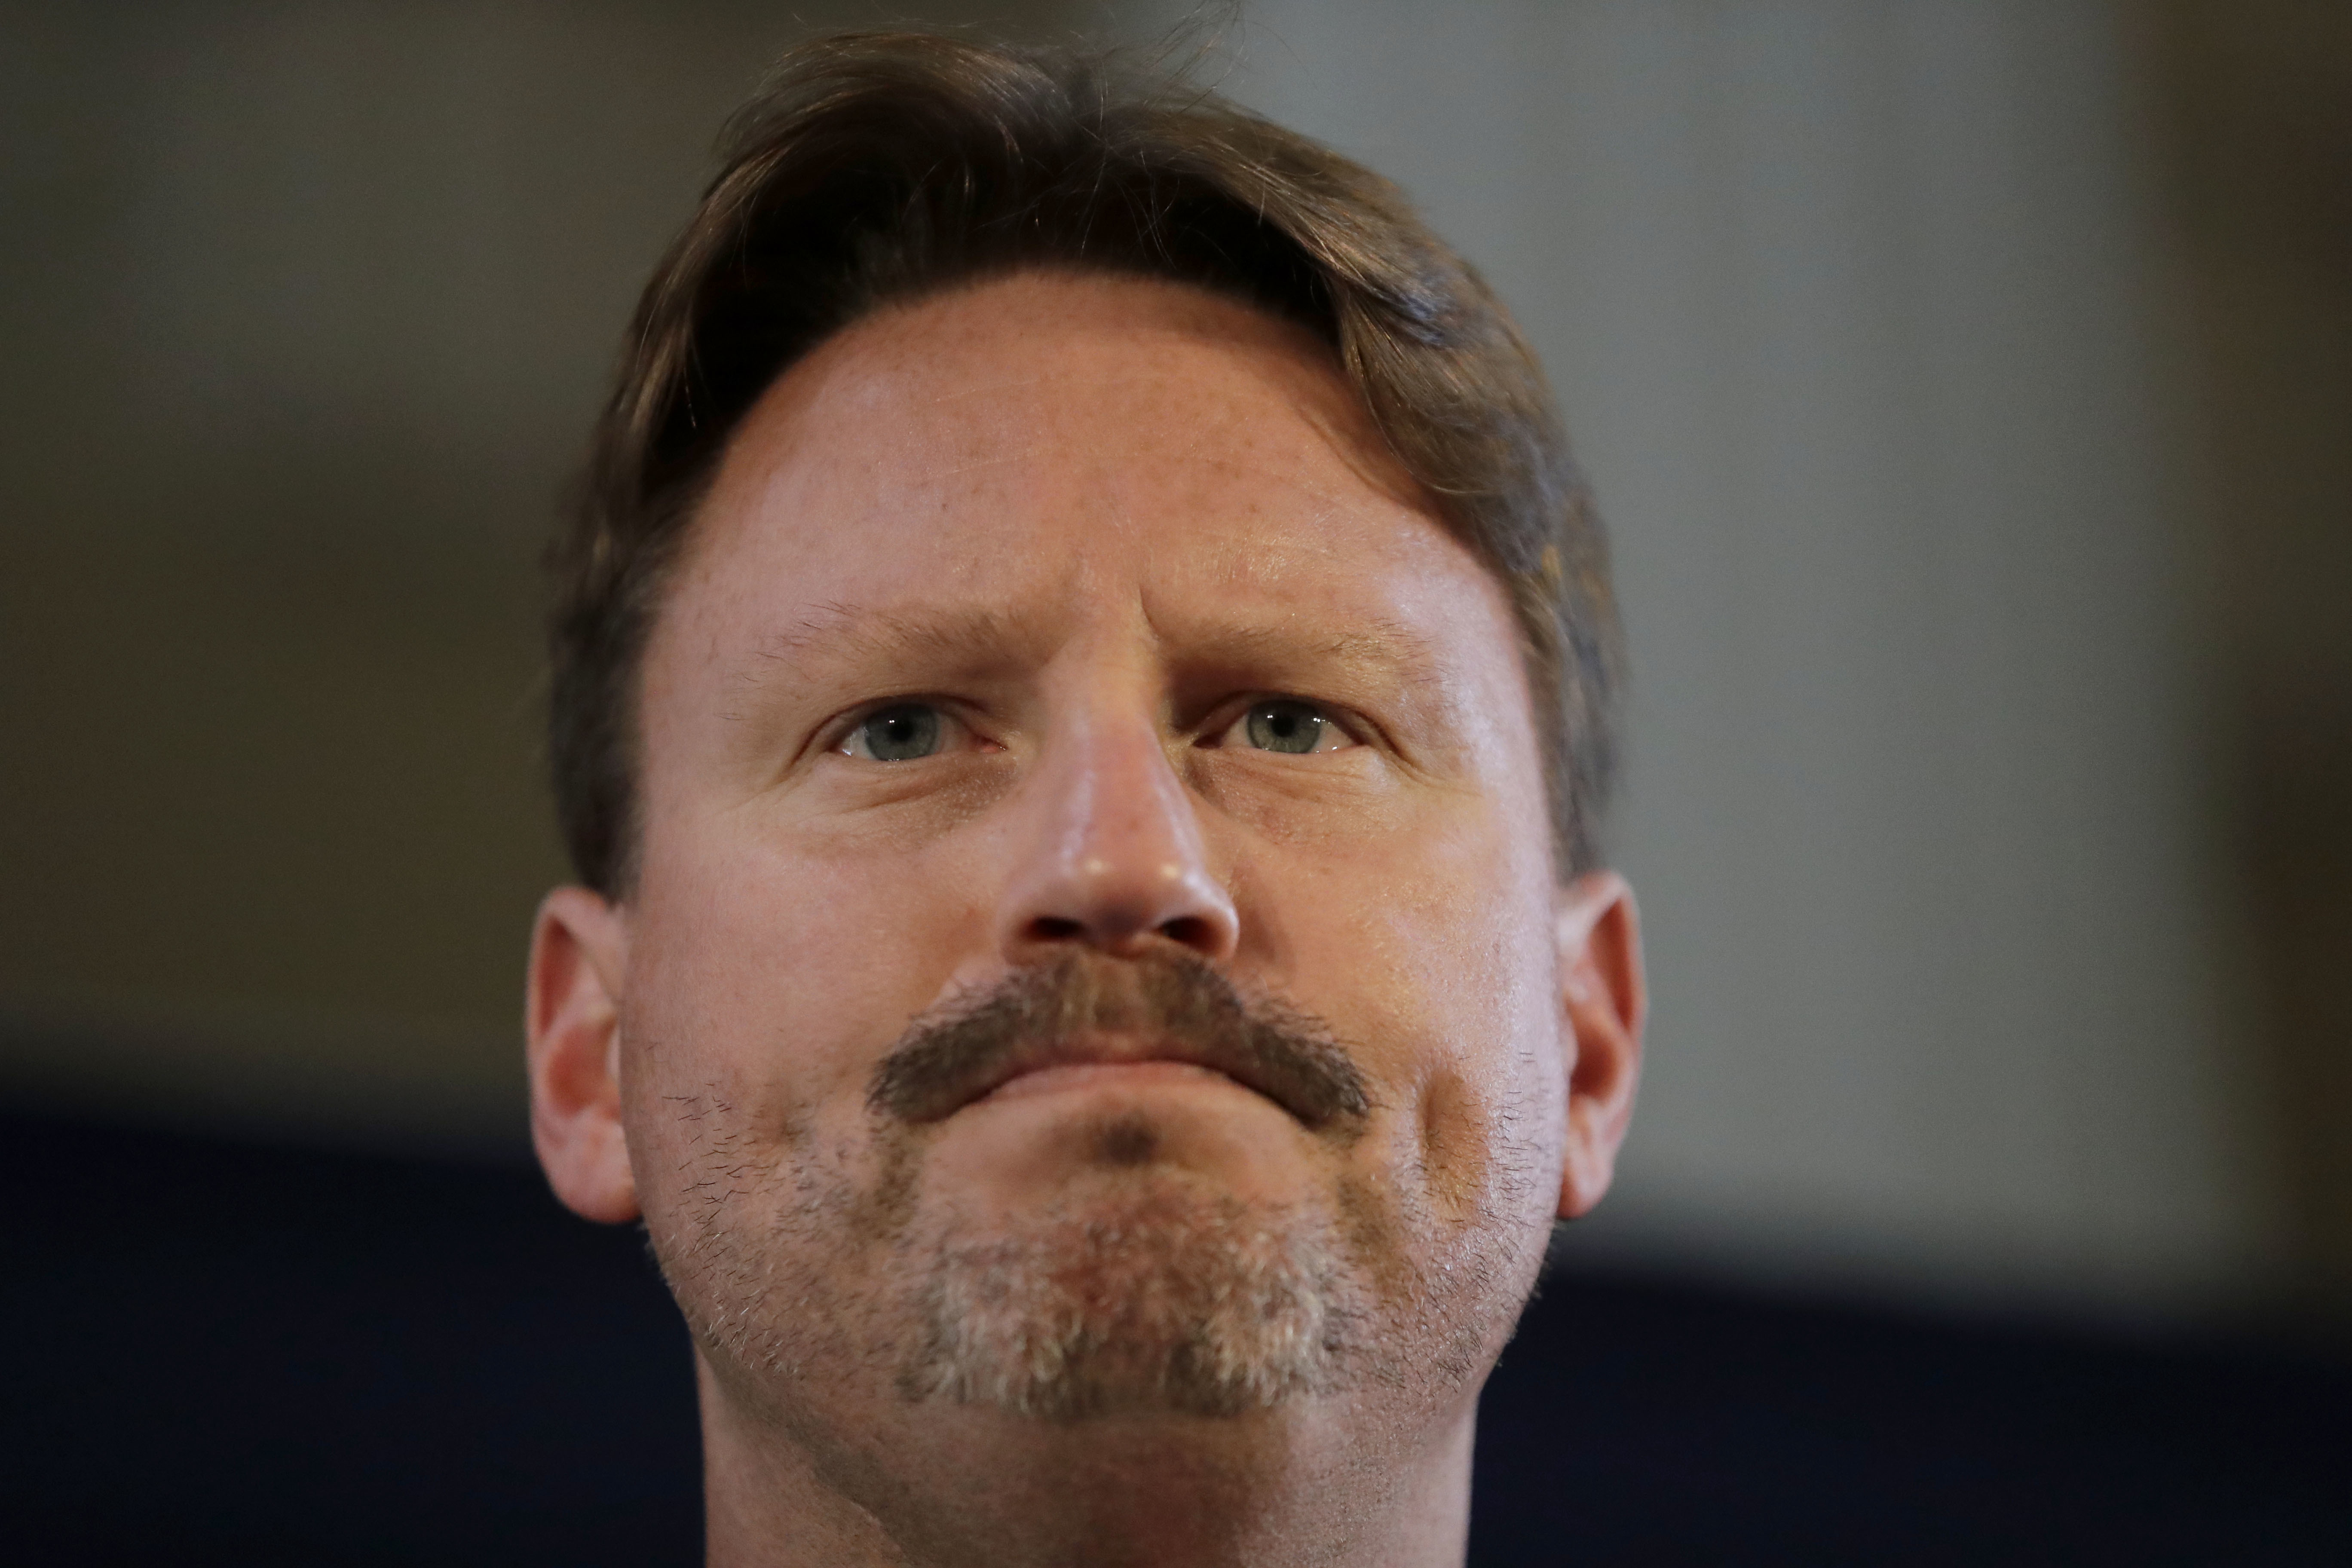 New York Giants head coach Ben McAdoo answers questions from journalists during a press conference at Syon House in Syon Park, south west London, Friday, Oct. 21, 2016. The Los Angeles Rams are due to play the New York Giants at Twickenham stadium in Lond